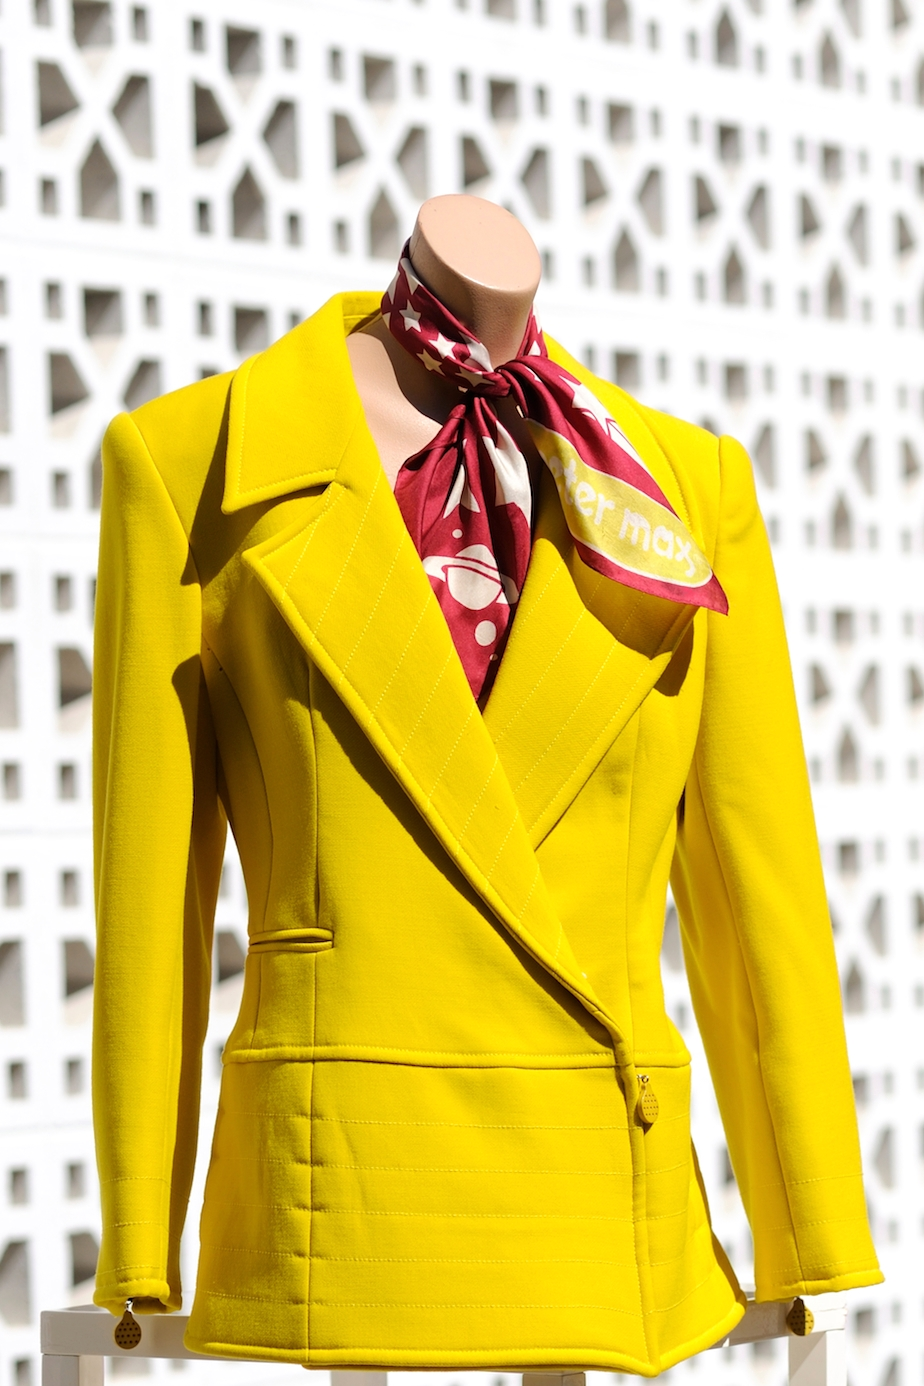 "State of Claude Montana Jacket Color: Acid yellow Lined Made in Italy Size: European 42/USA 8 $500. Peter Max Silk Scarf 20 1/4"" X 21"" Colors: burgundy, white with acid yellow logo. Made in Japan $100."